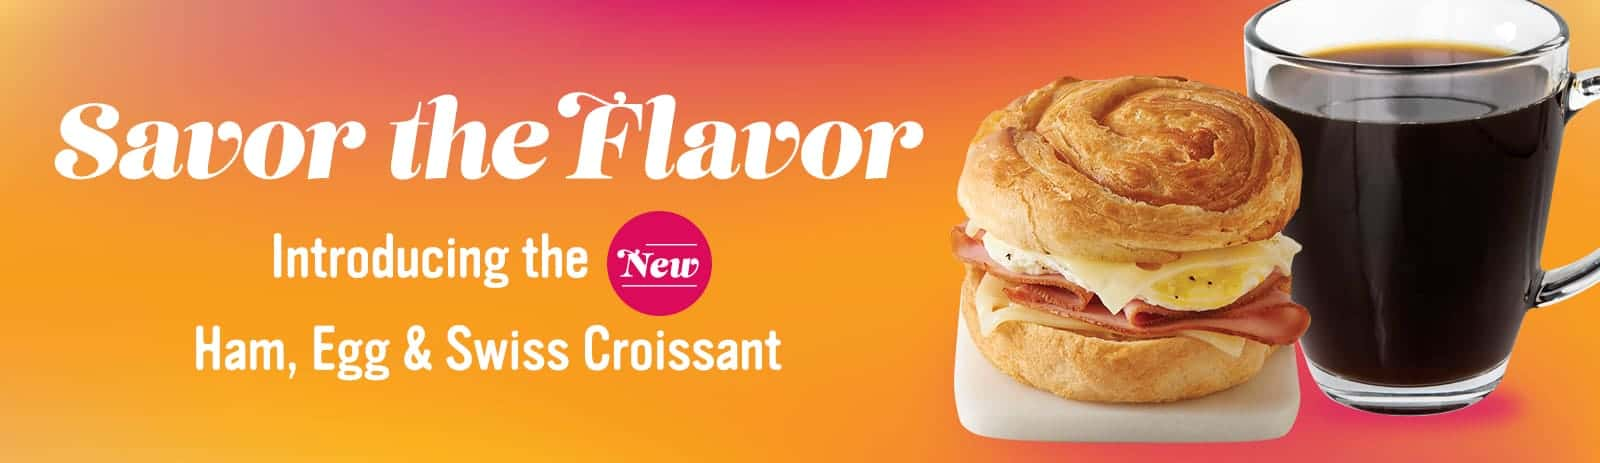 Savor the flavor with the new Ham, Egg, and Swiss Croissant